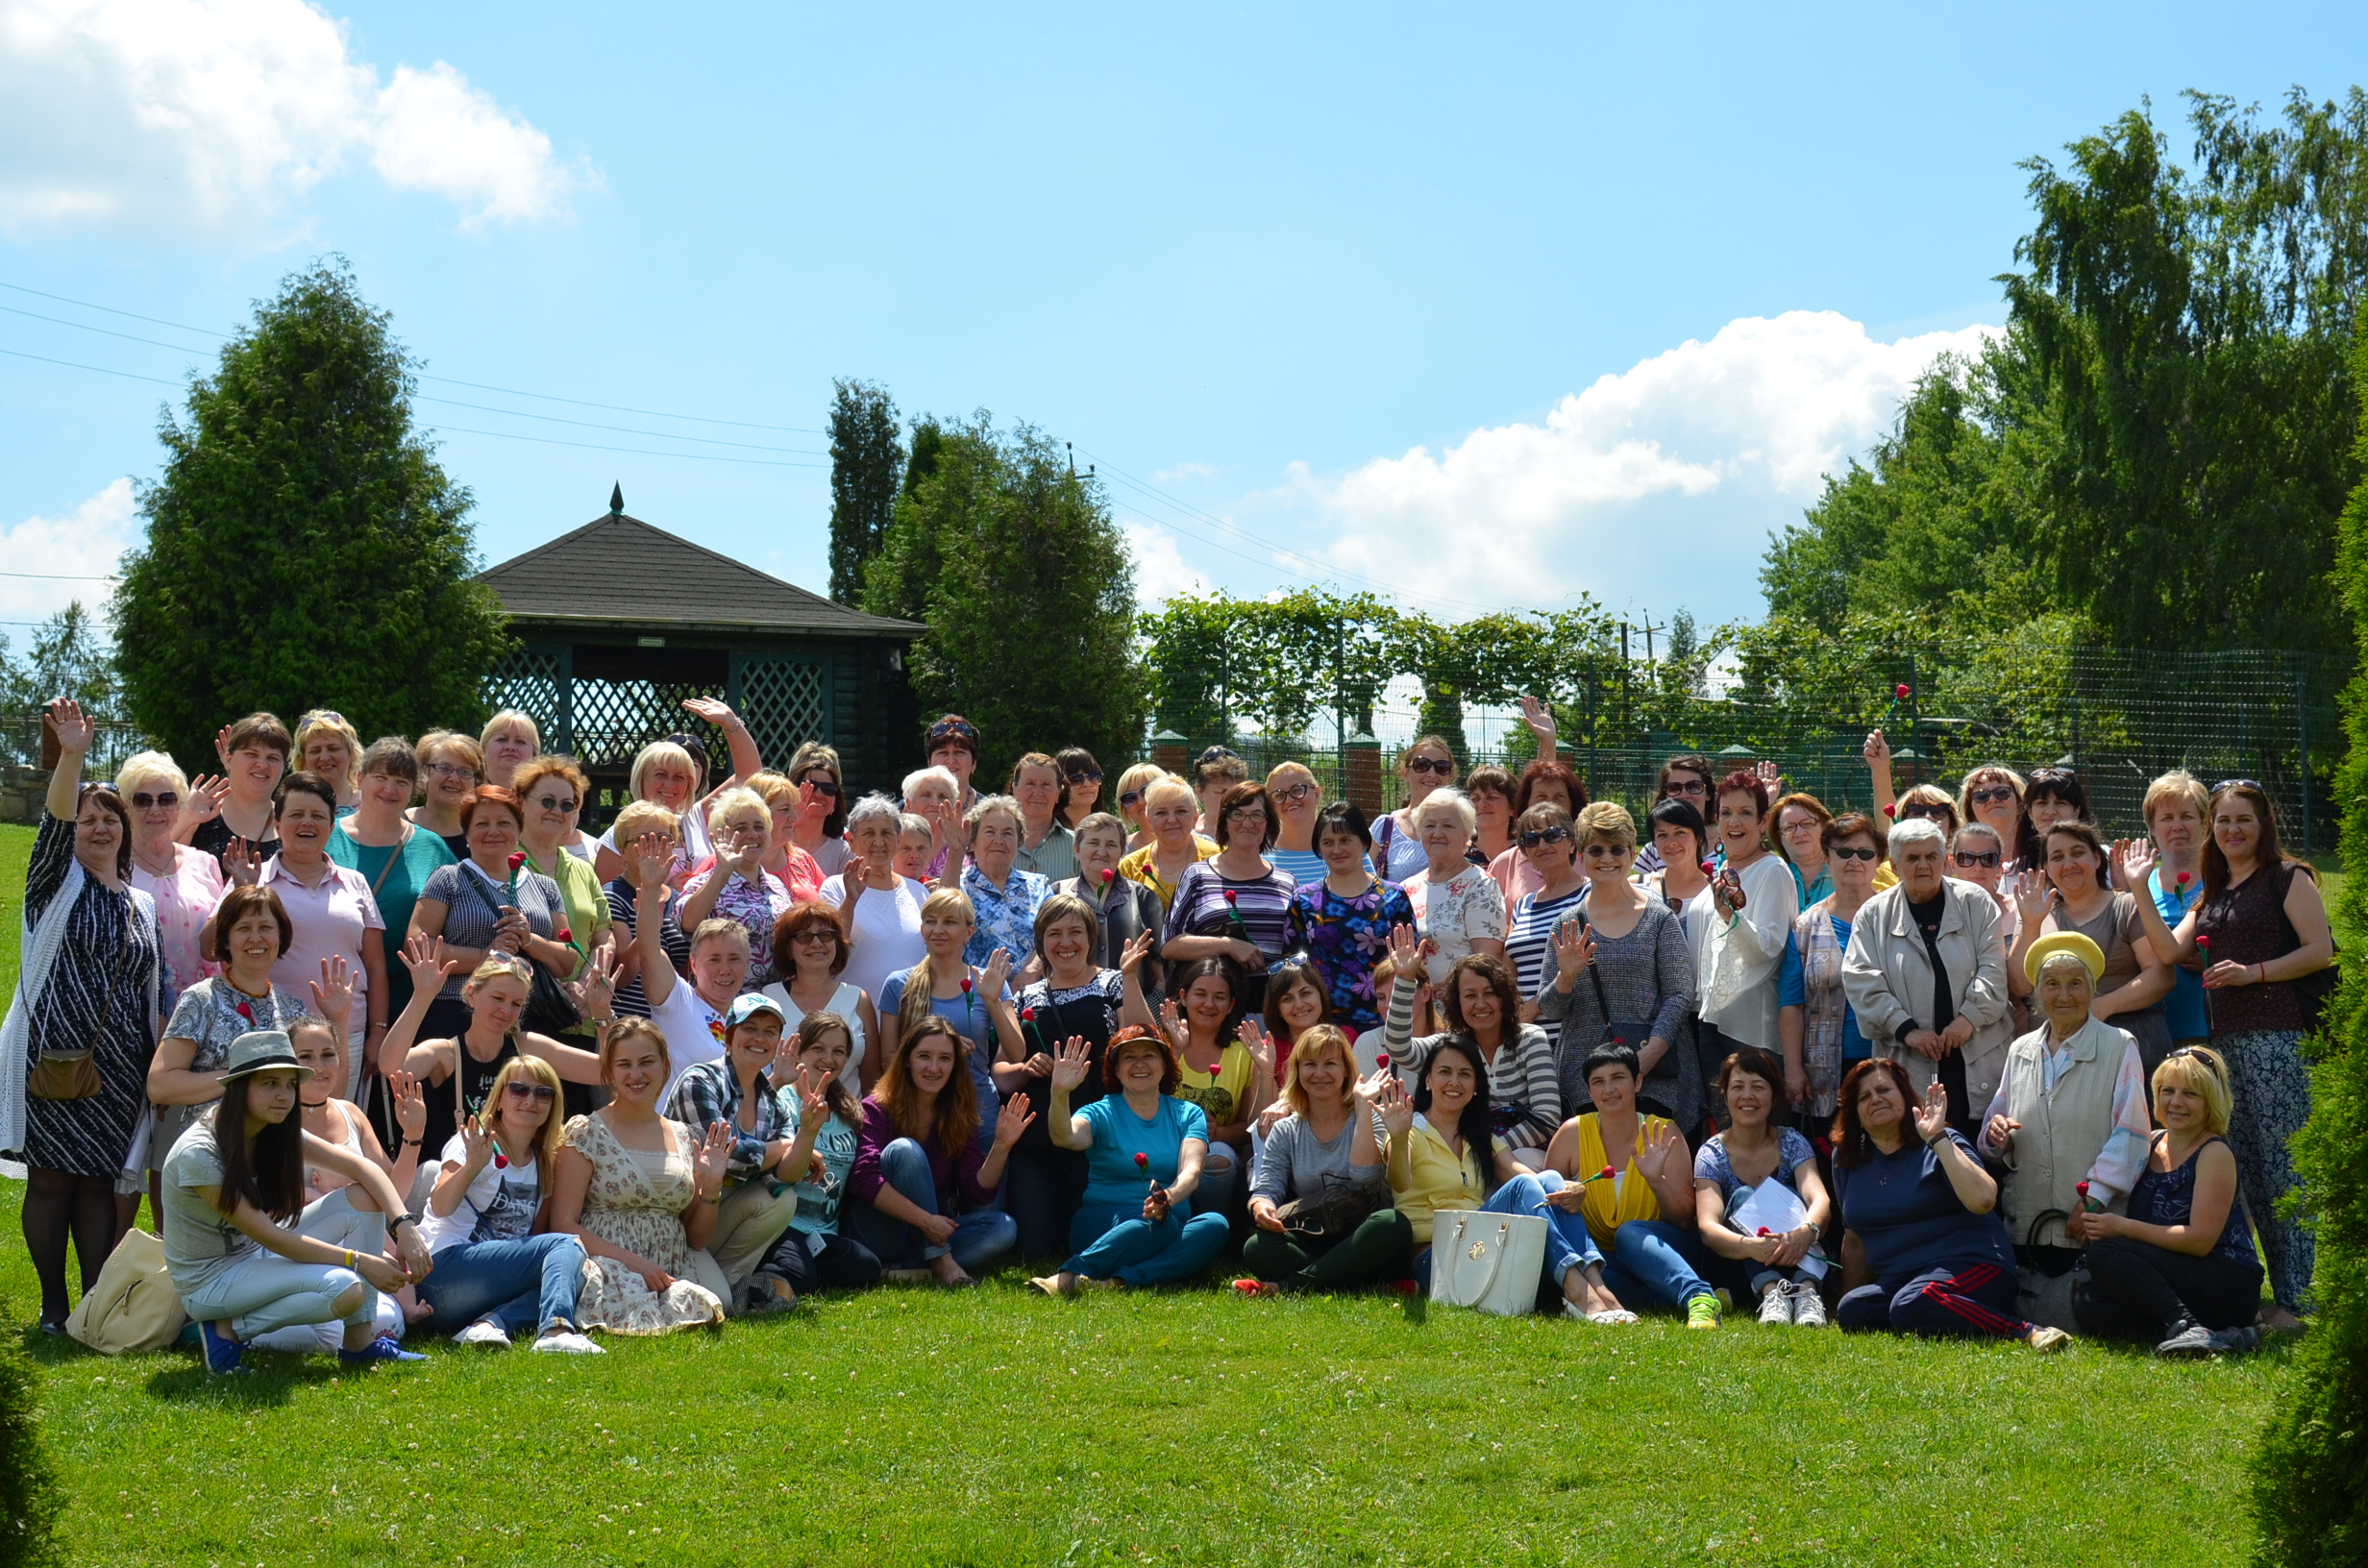 Here is most of the ladies at the women's camp right after we'd all arrived at the venue.